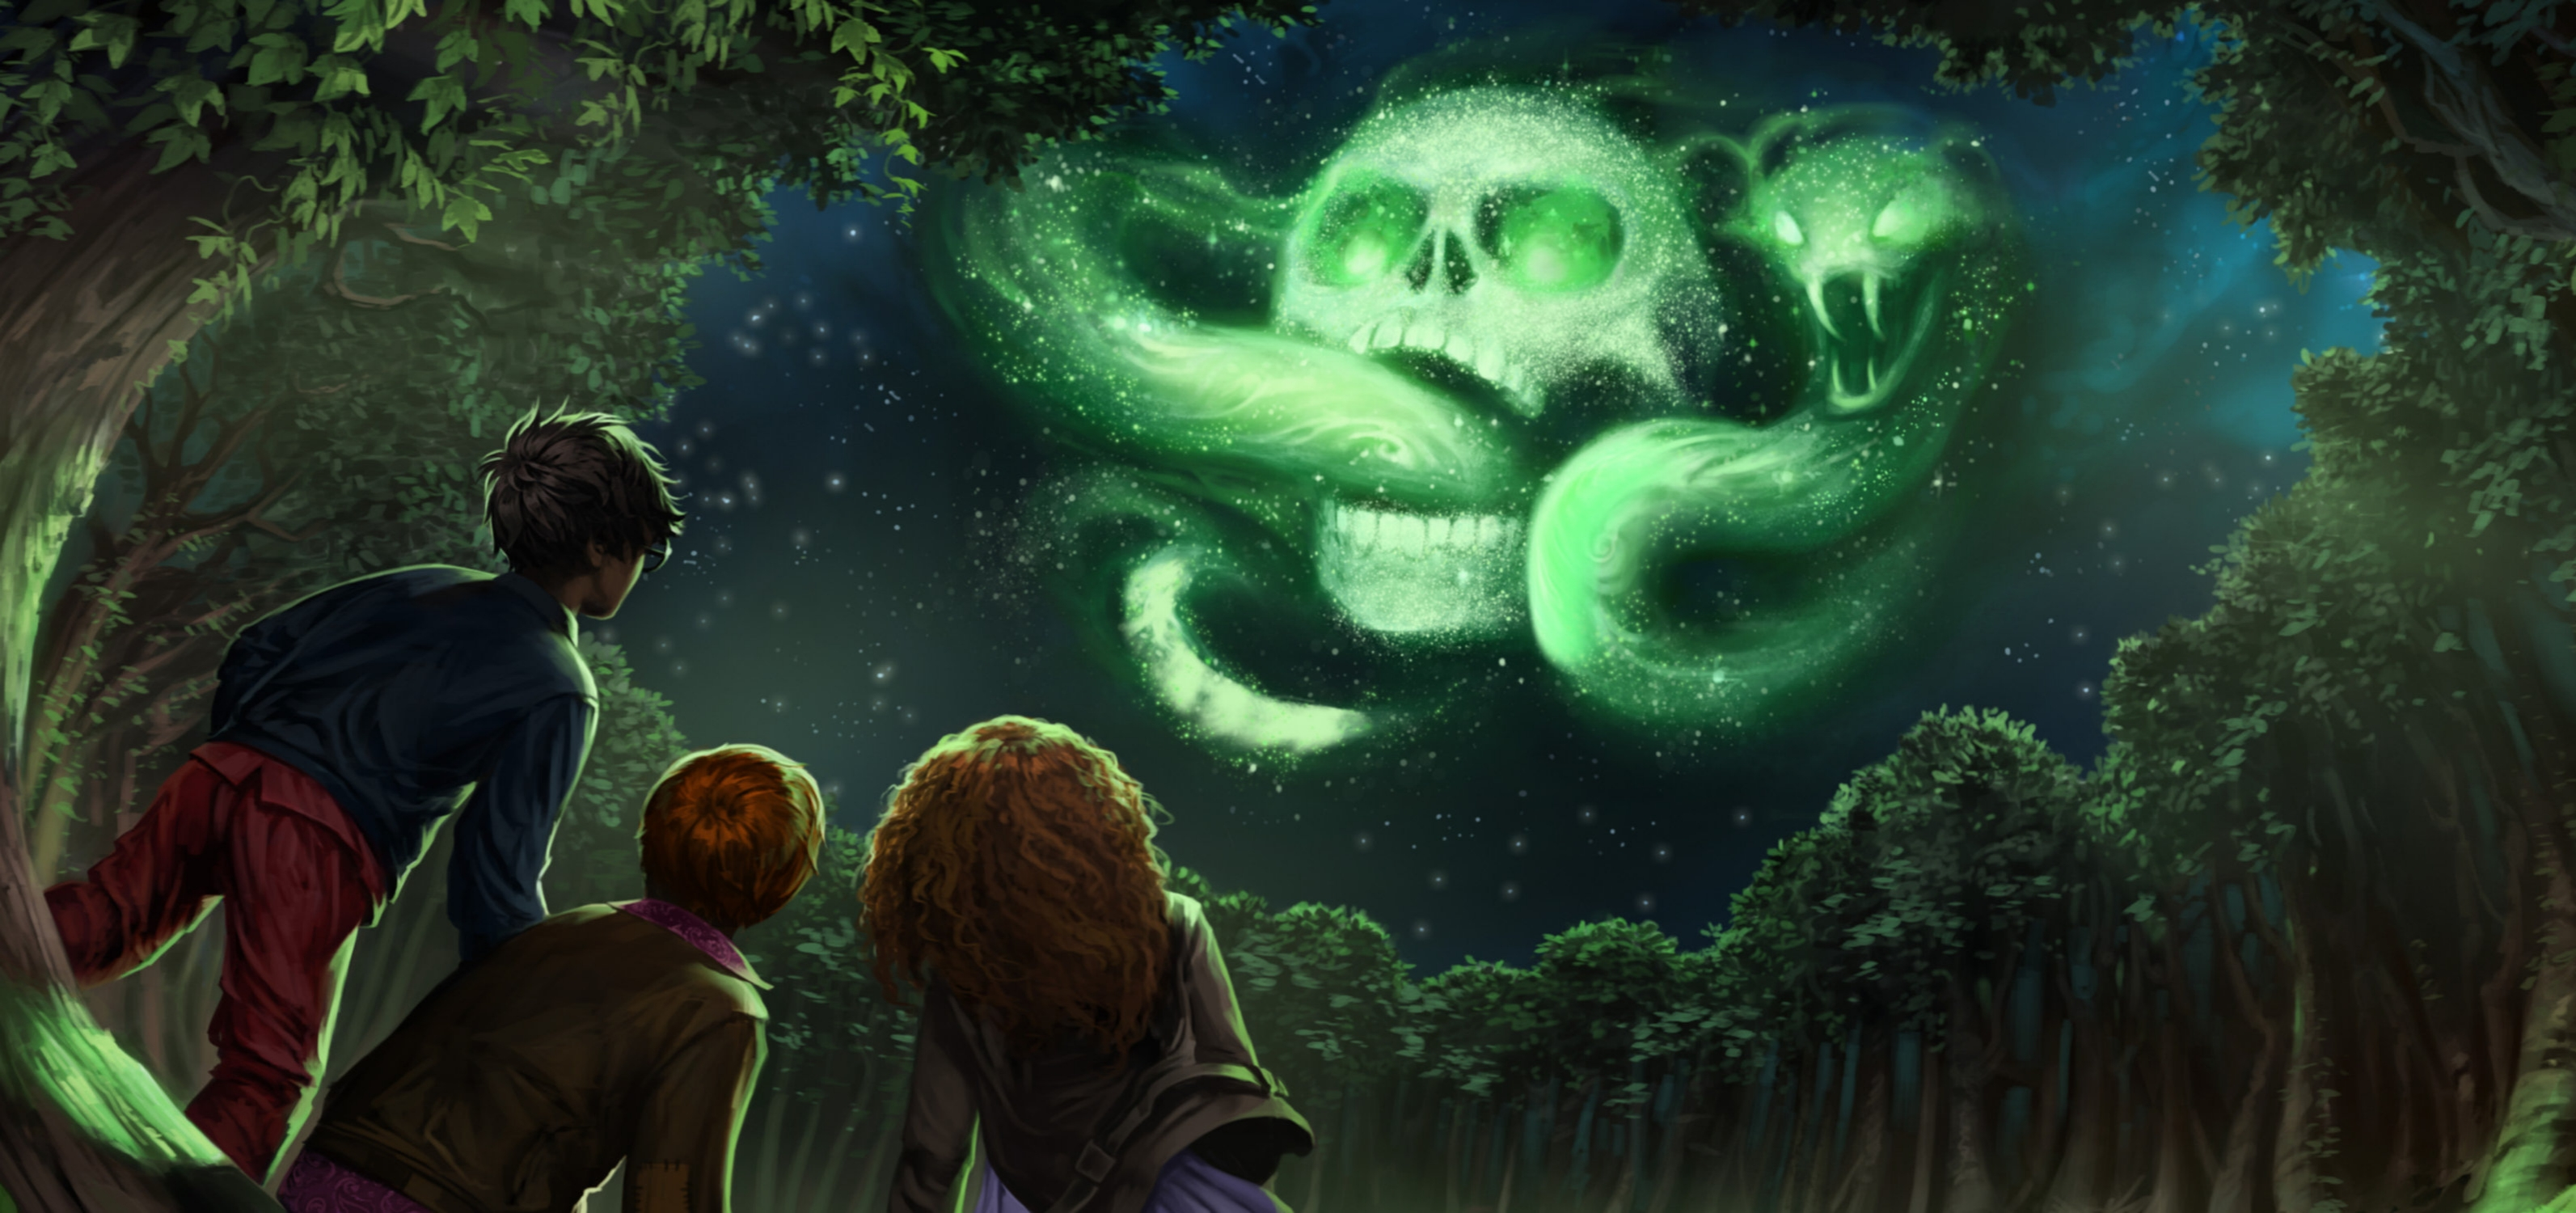 Harry, Ron and Hermione see the Dark Mark in the sky